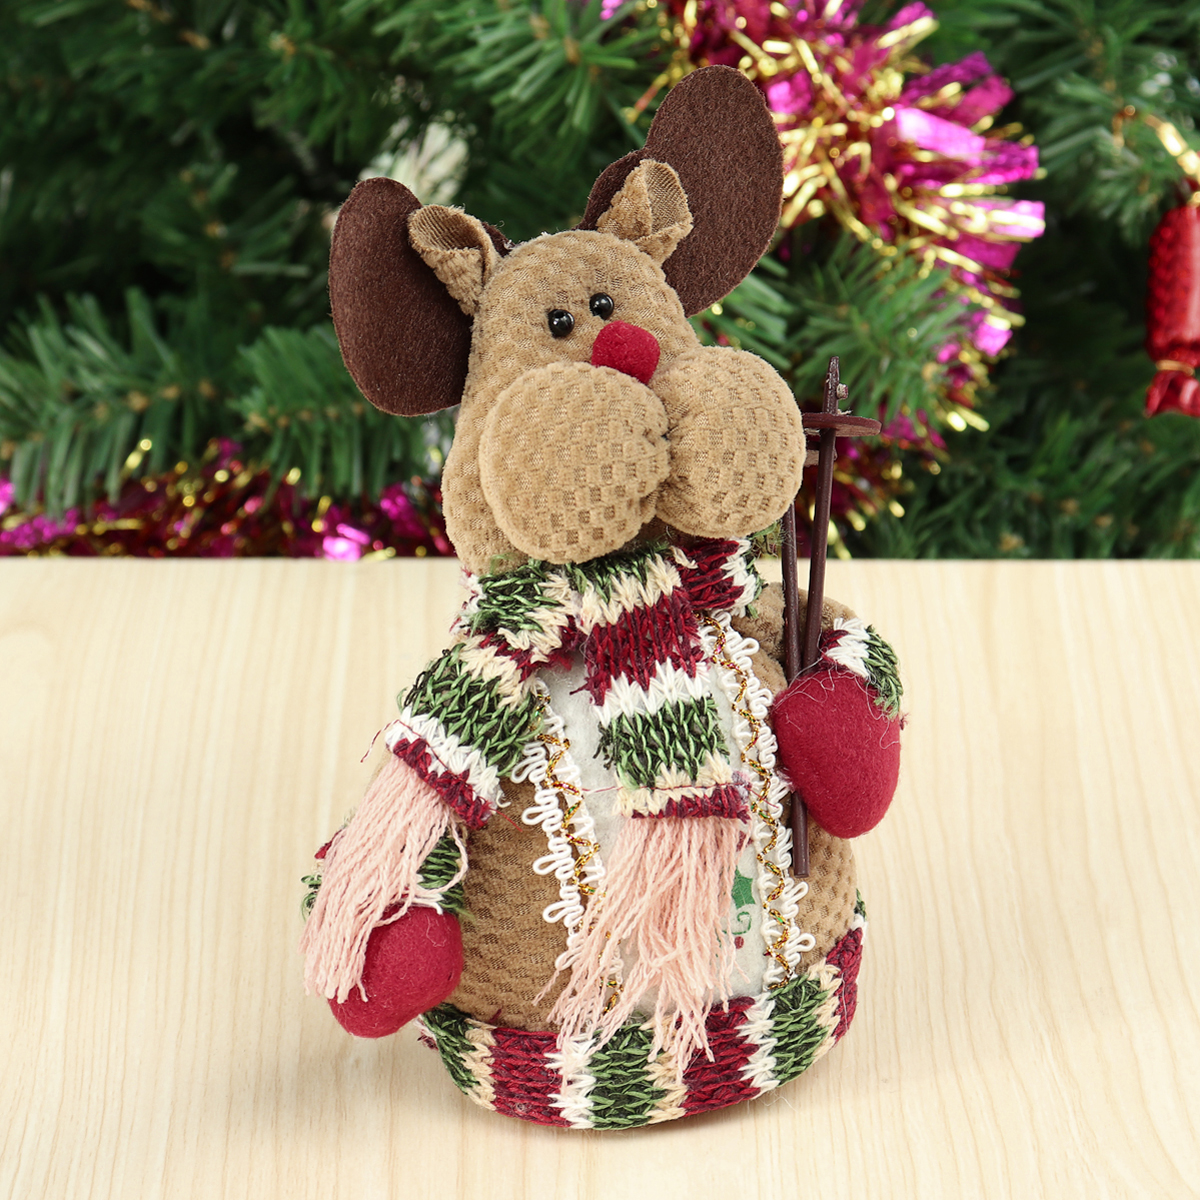 Old Man Snowman Elk Table Christmas Ornament Party Decor Gift Home Decorations